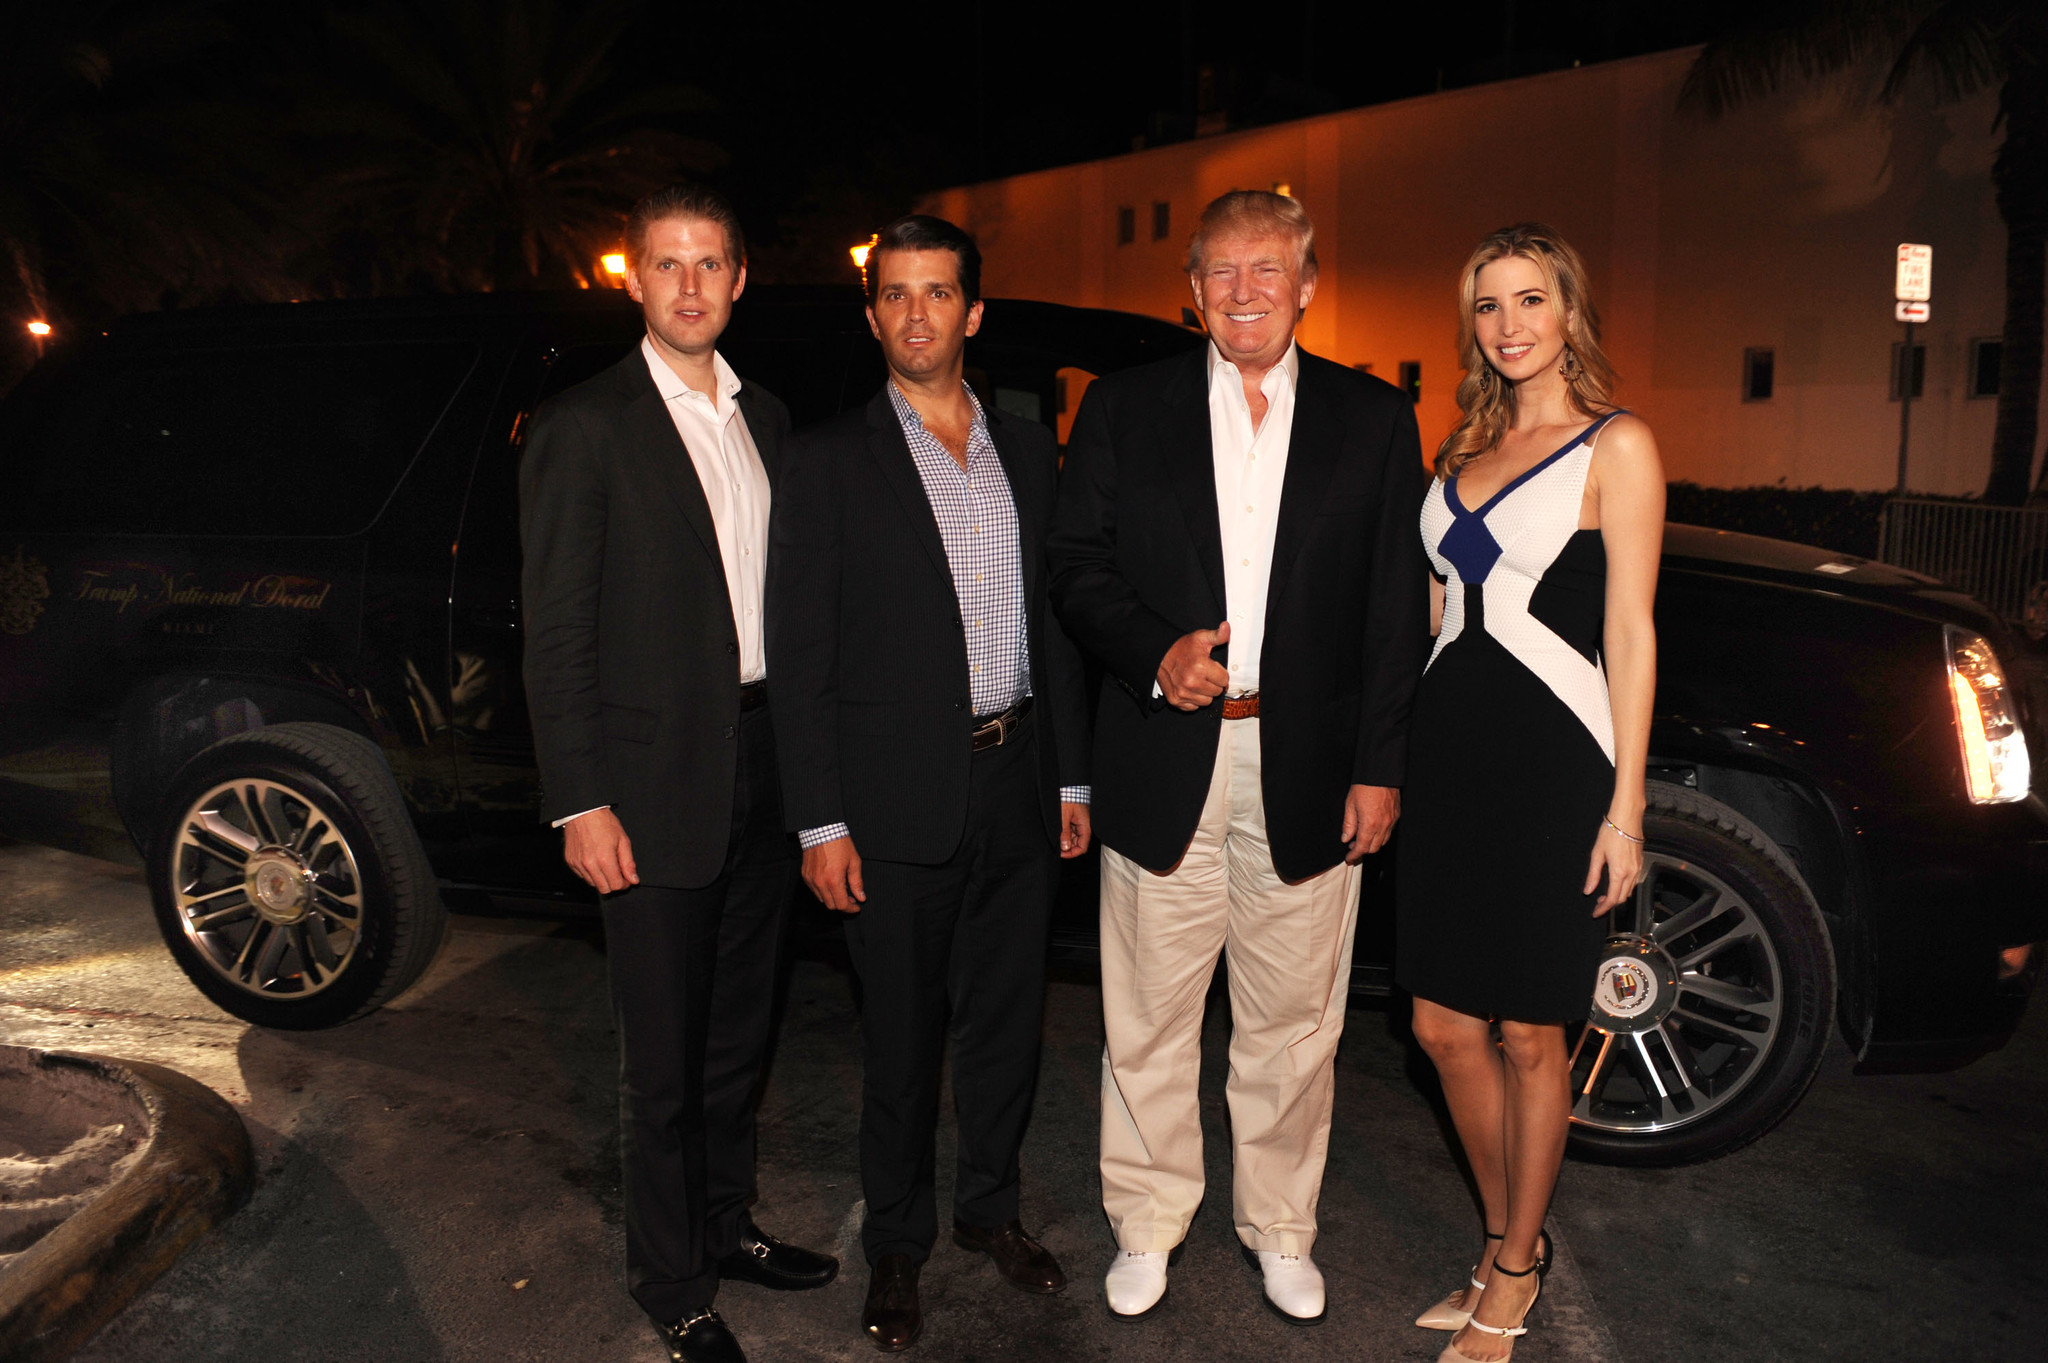 World Golf Championships-Cadillac Championship parties - Eric Trump, Donald Jr. Trump, Donald Trump and Ivanka Trump